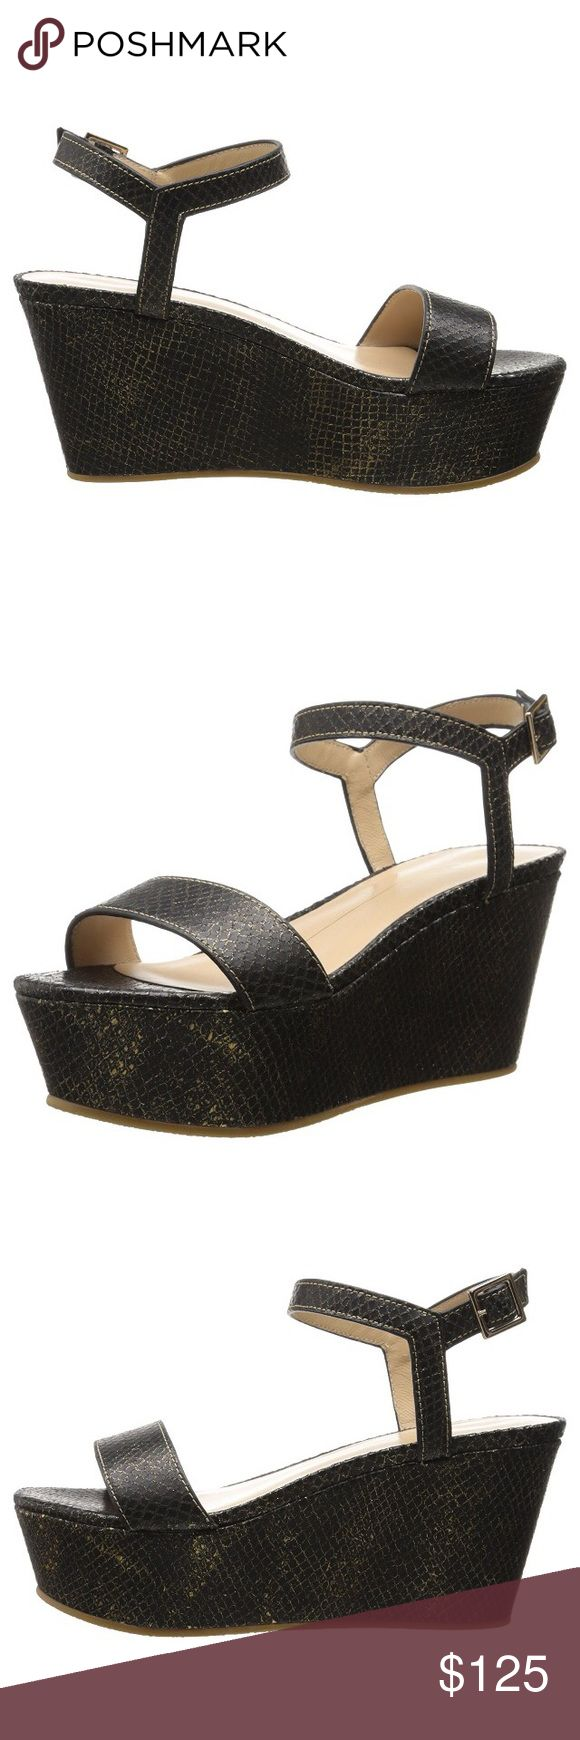 Lola Cruz Women's Detailed Wedge Sandal Brand new, in the original box with dust bag and card. It is size 38 EU. Would fit 6.5 -7 US Lola Cruz Shoes Sandals